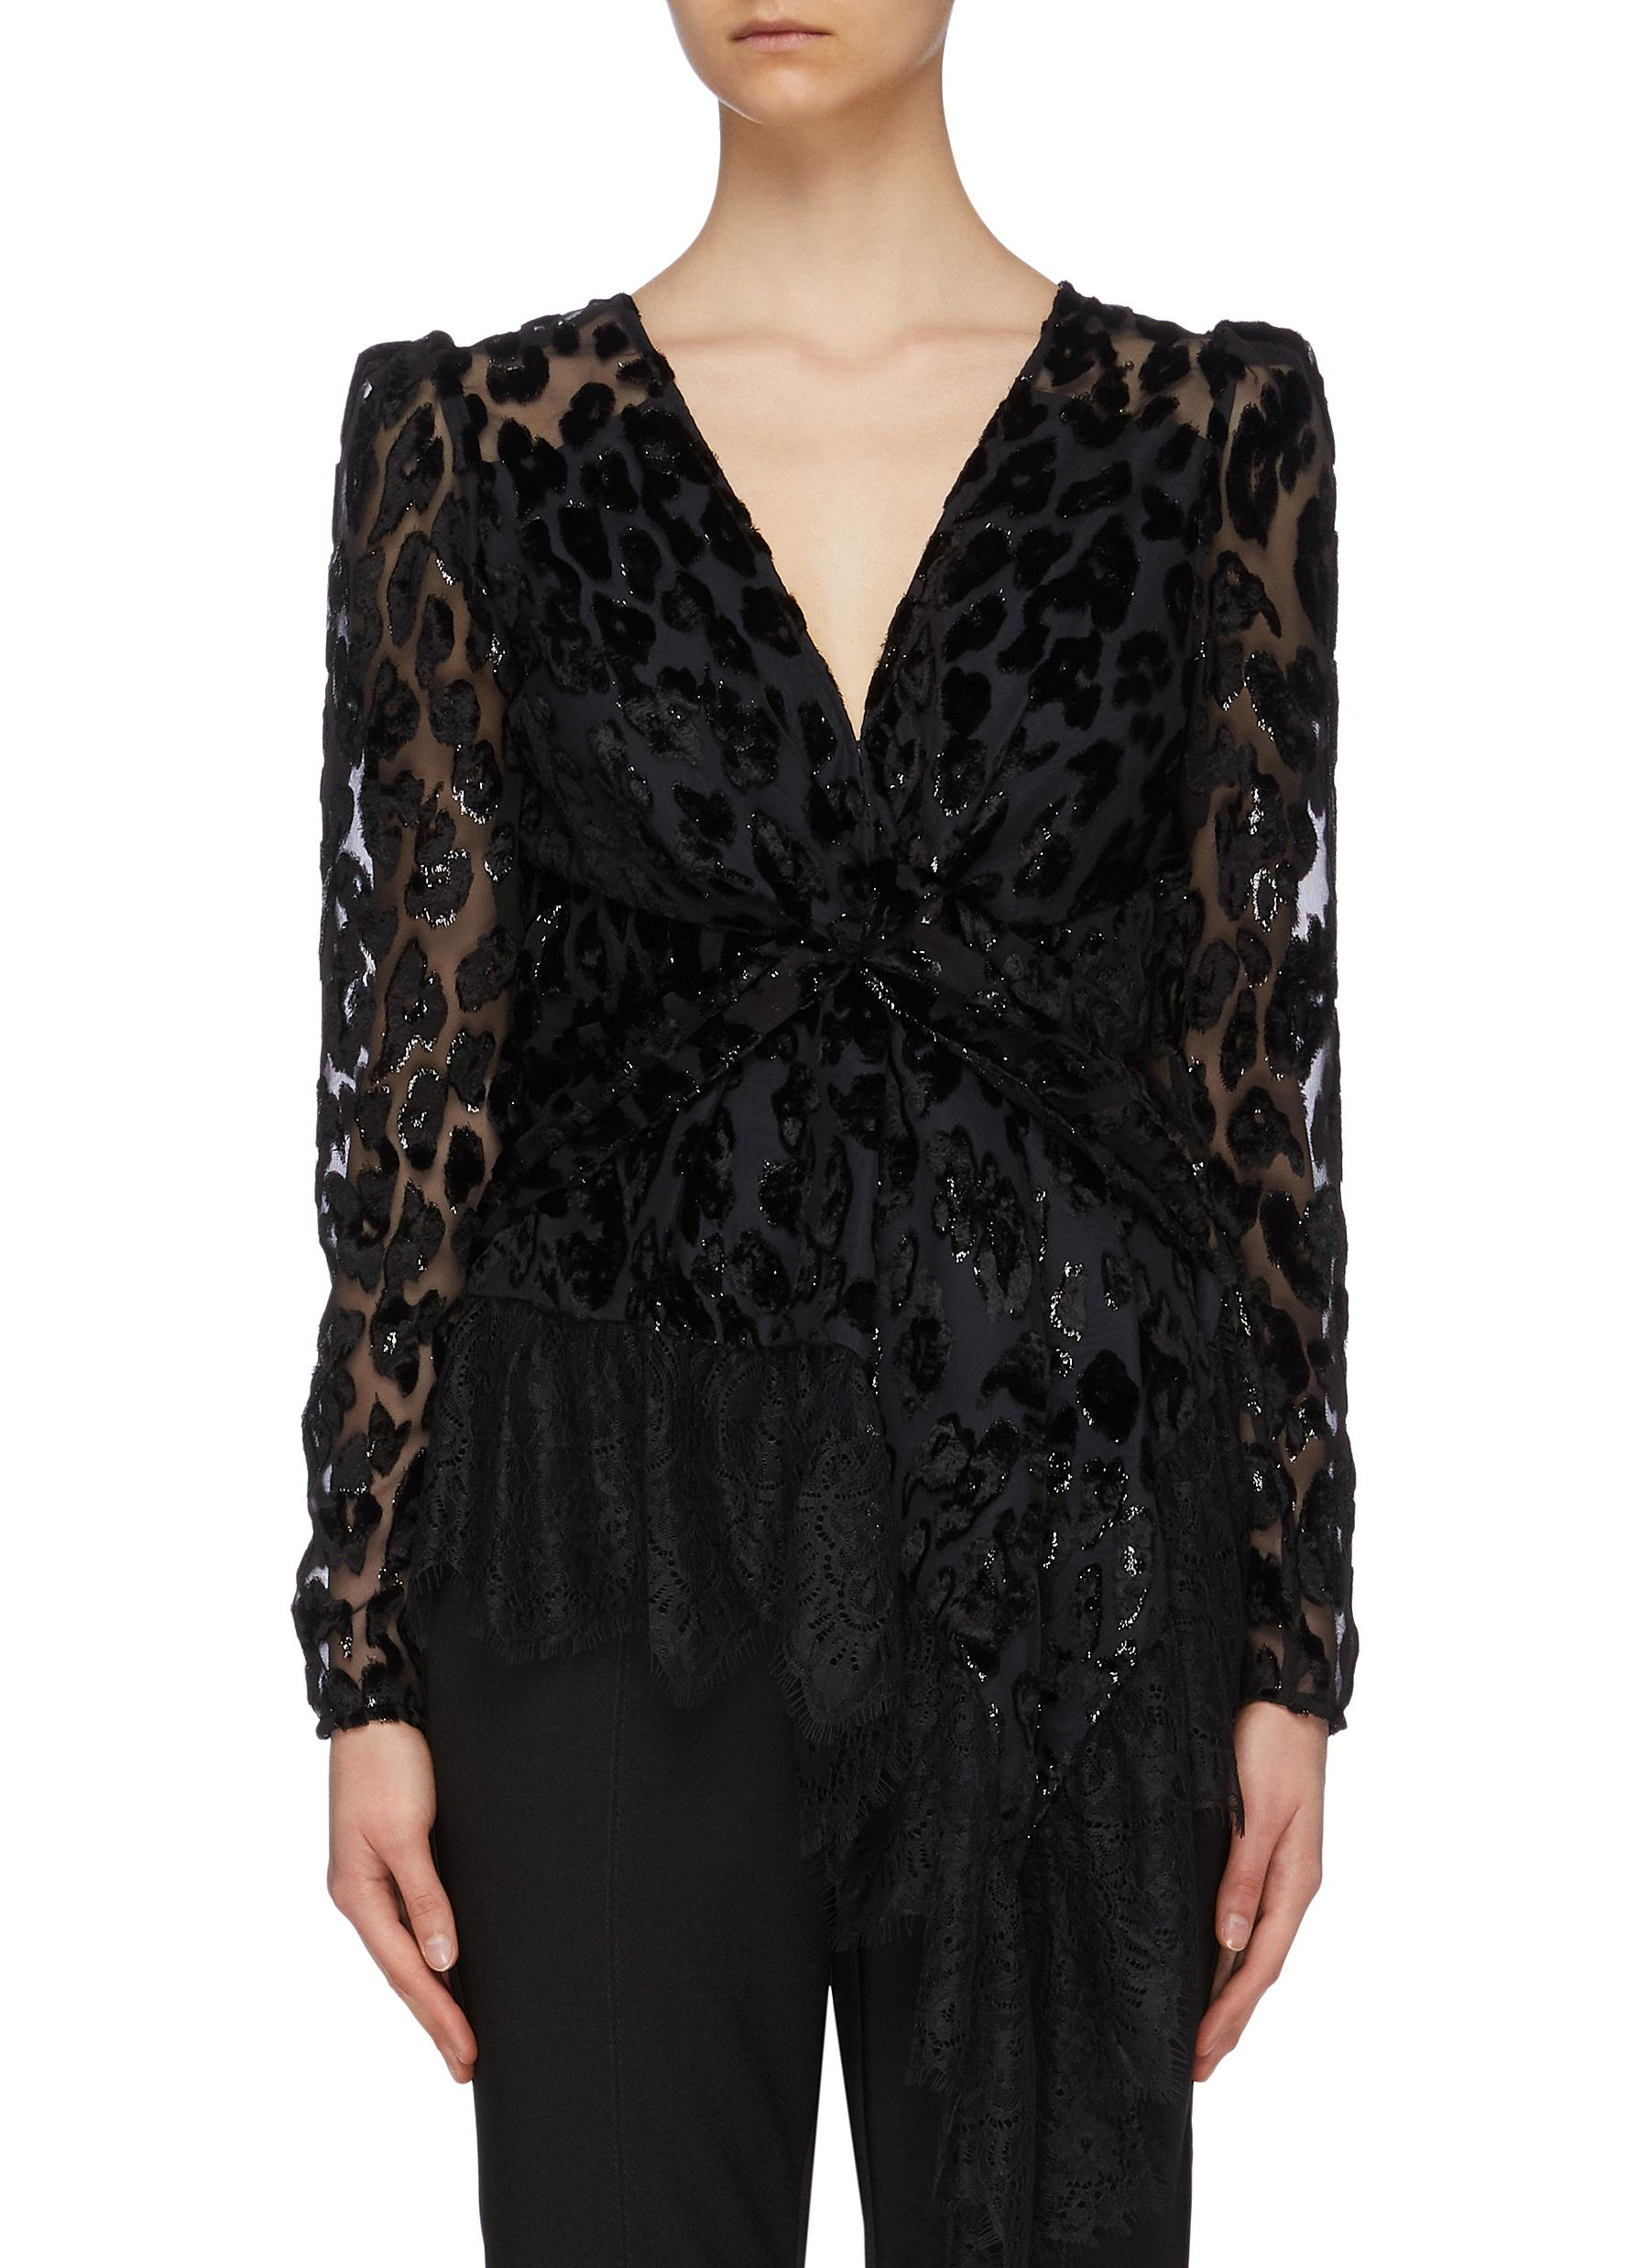 Lace trim twist front leopard devoré peplum top by Self-Portrait